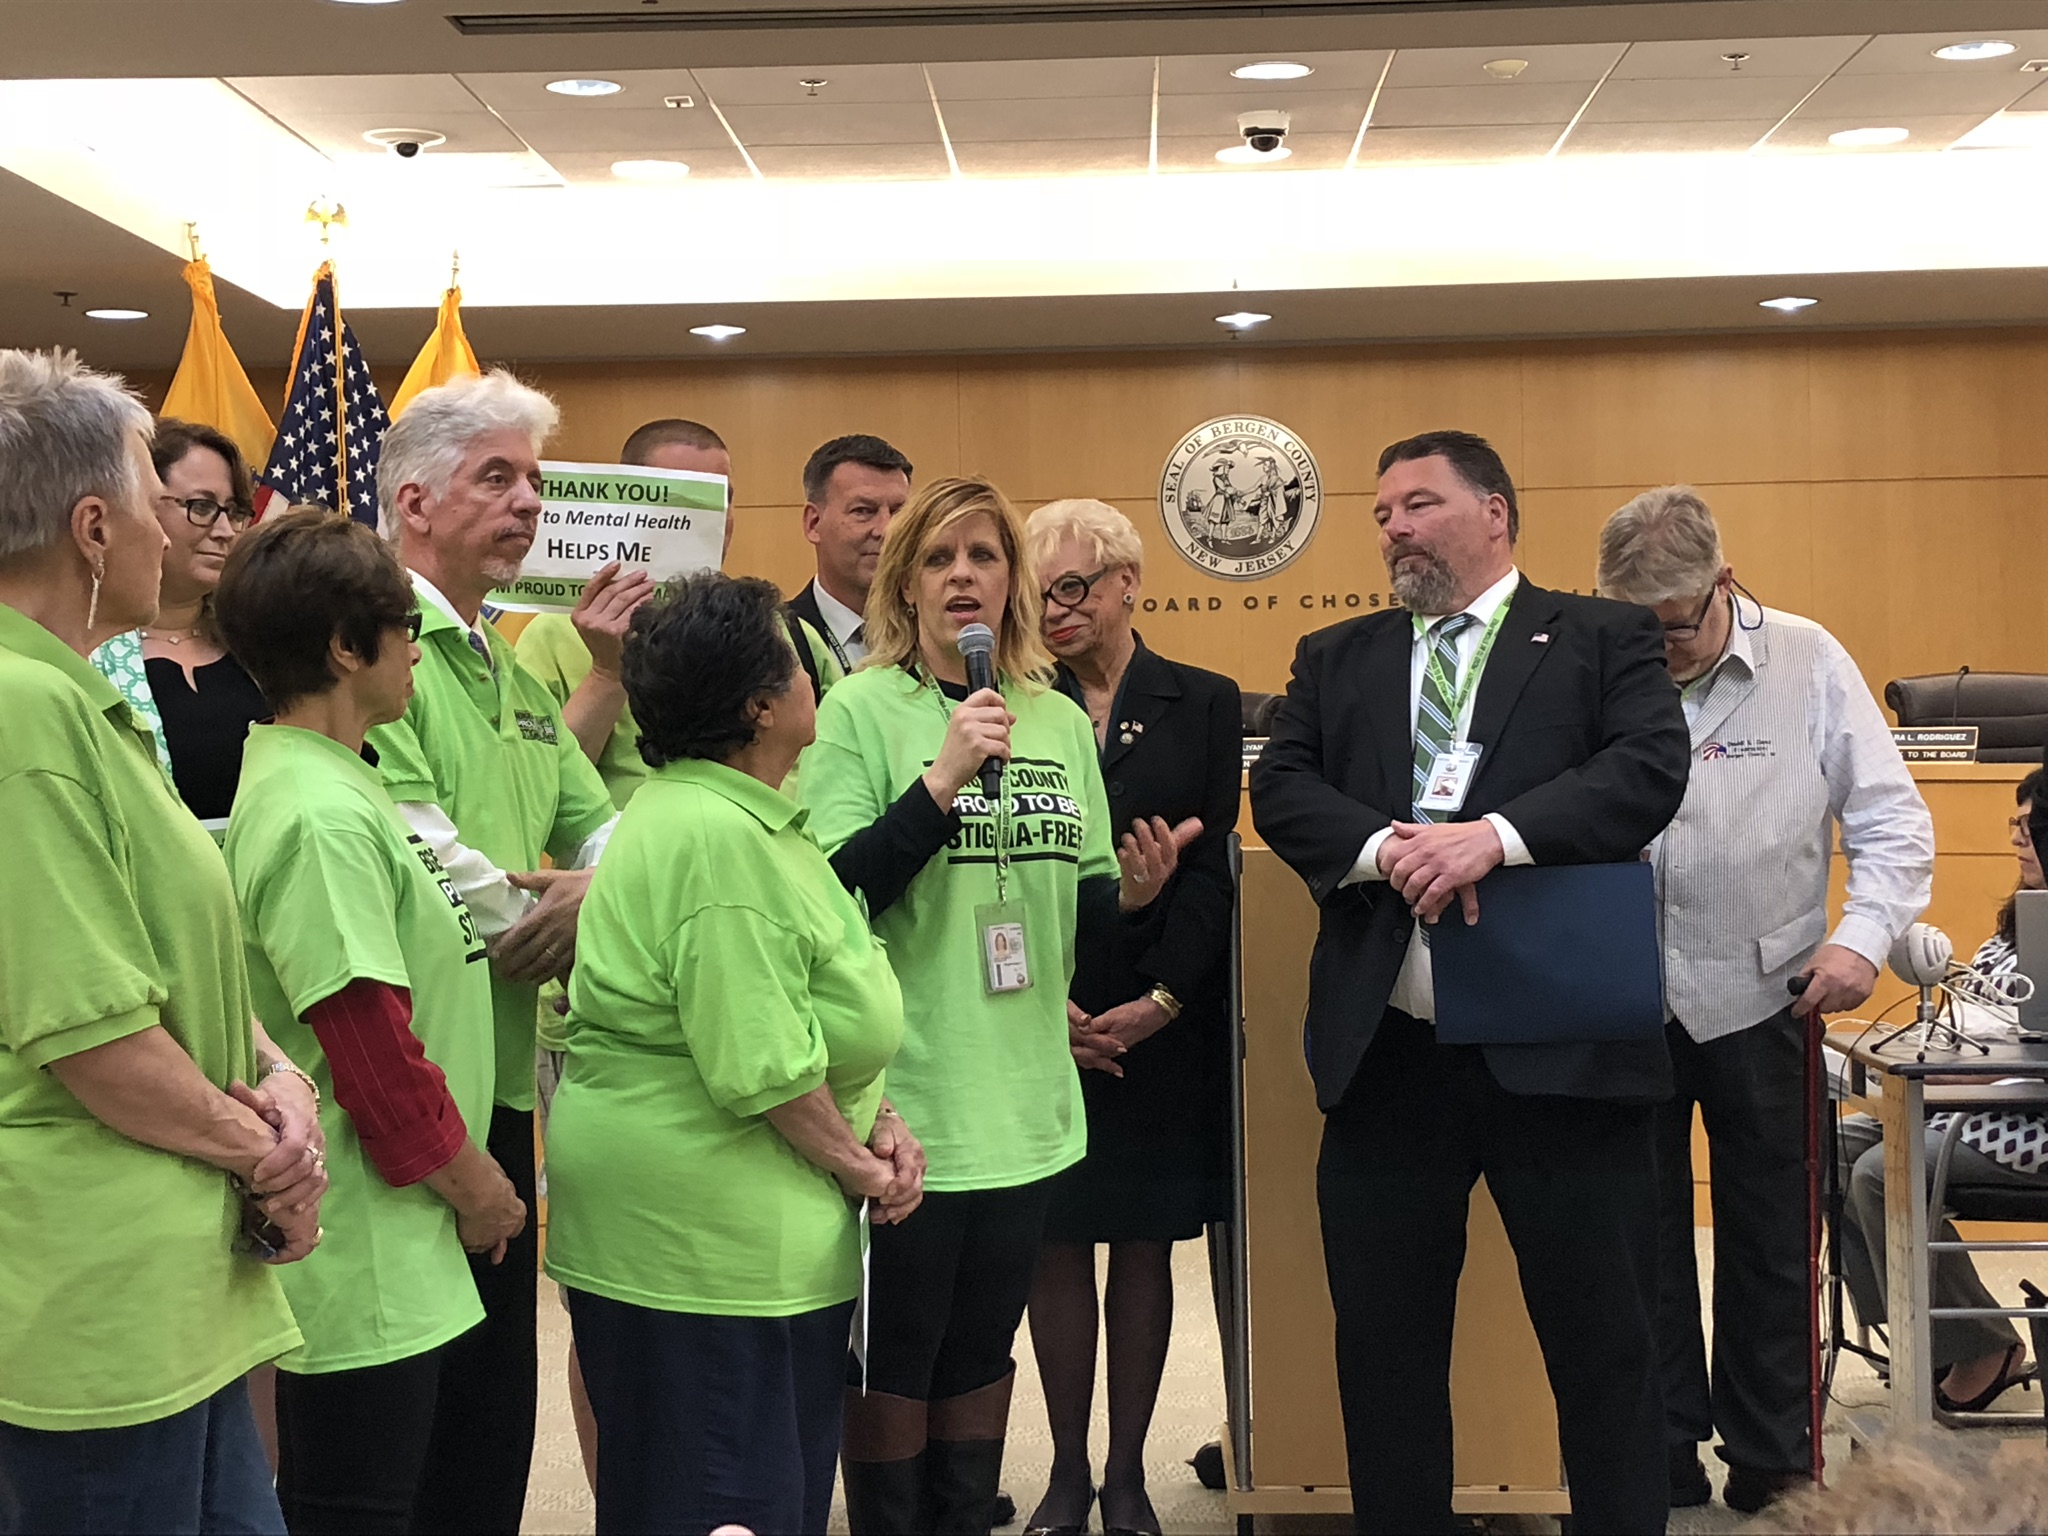 Michele Hart-Loughlin honored for her dedication and success of Bergen County's Stigma-Free movement. Presented by BC  Board of Freeholders